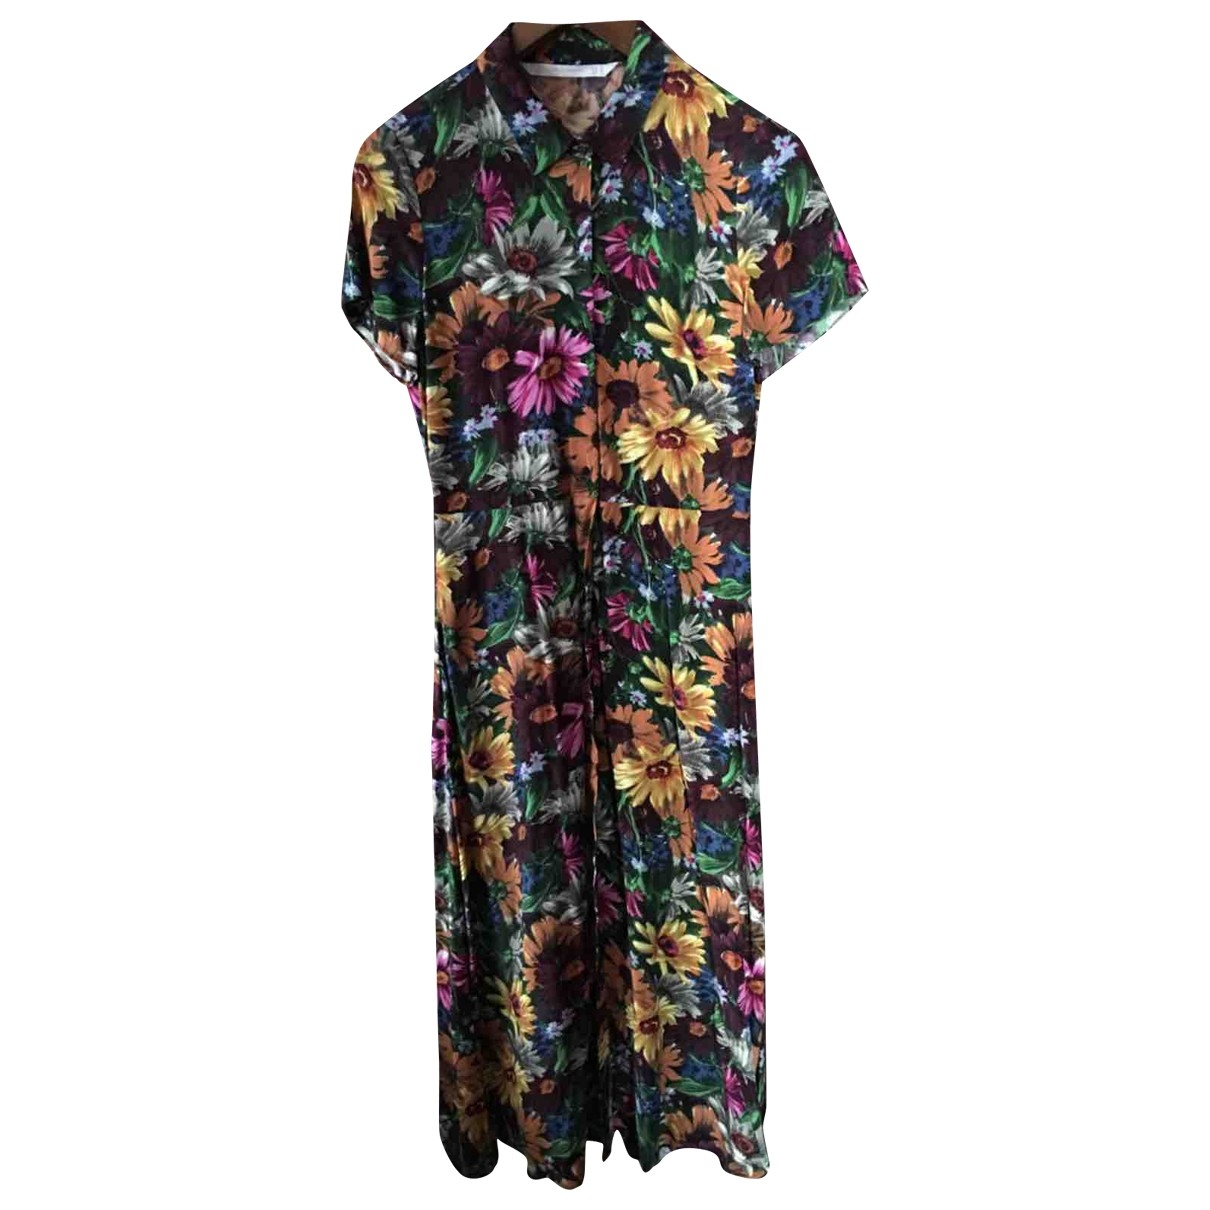 Zara \N Multicolour dress for Women S